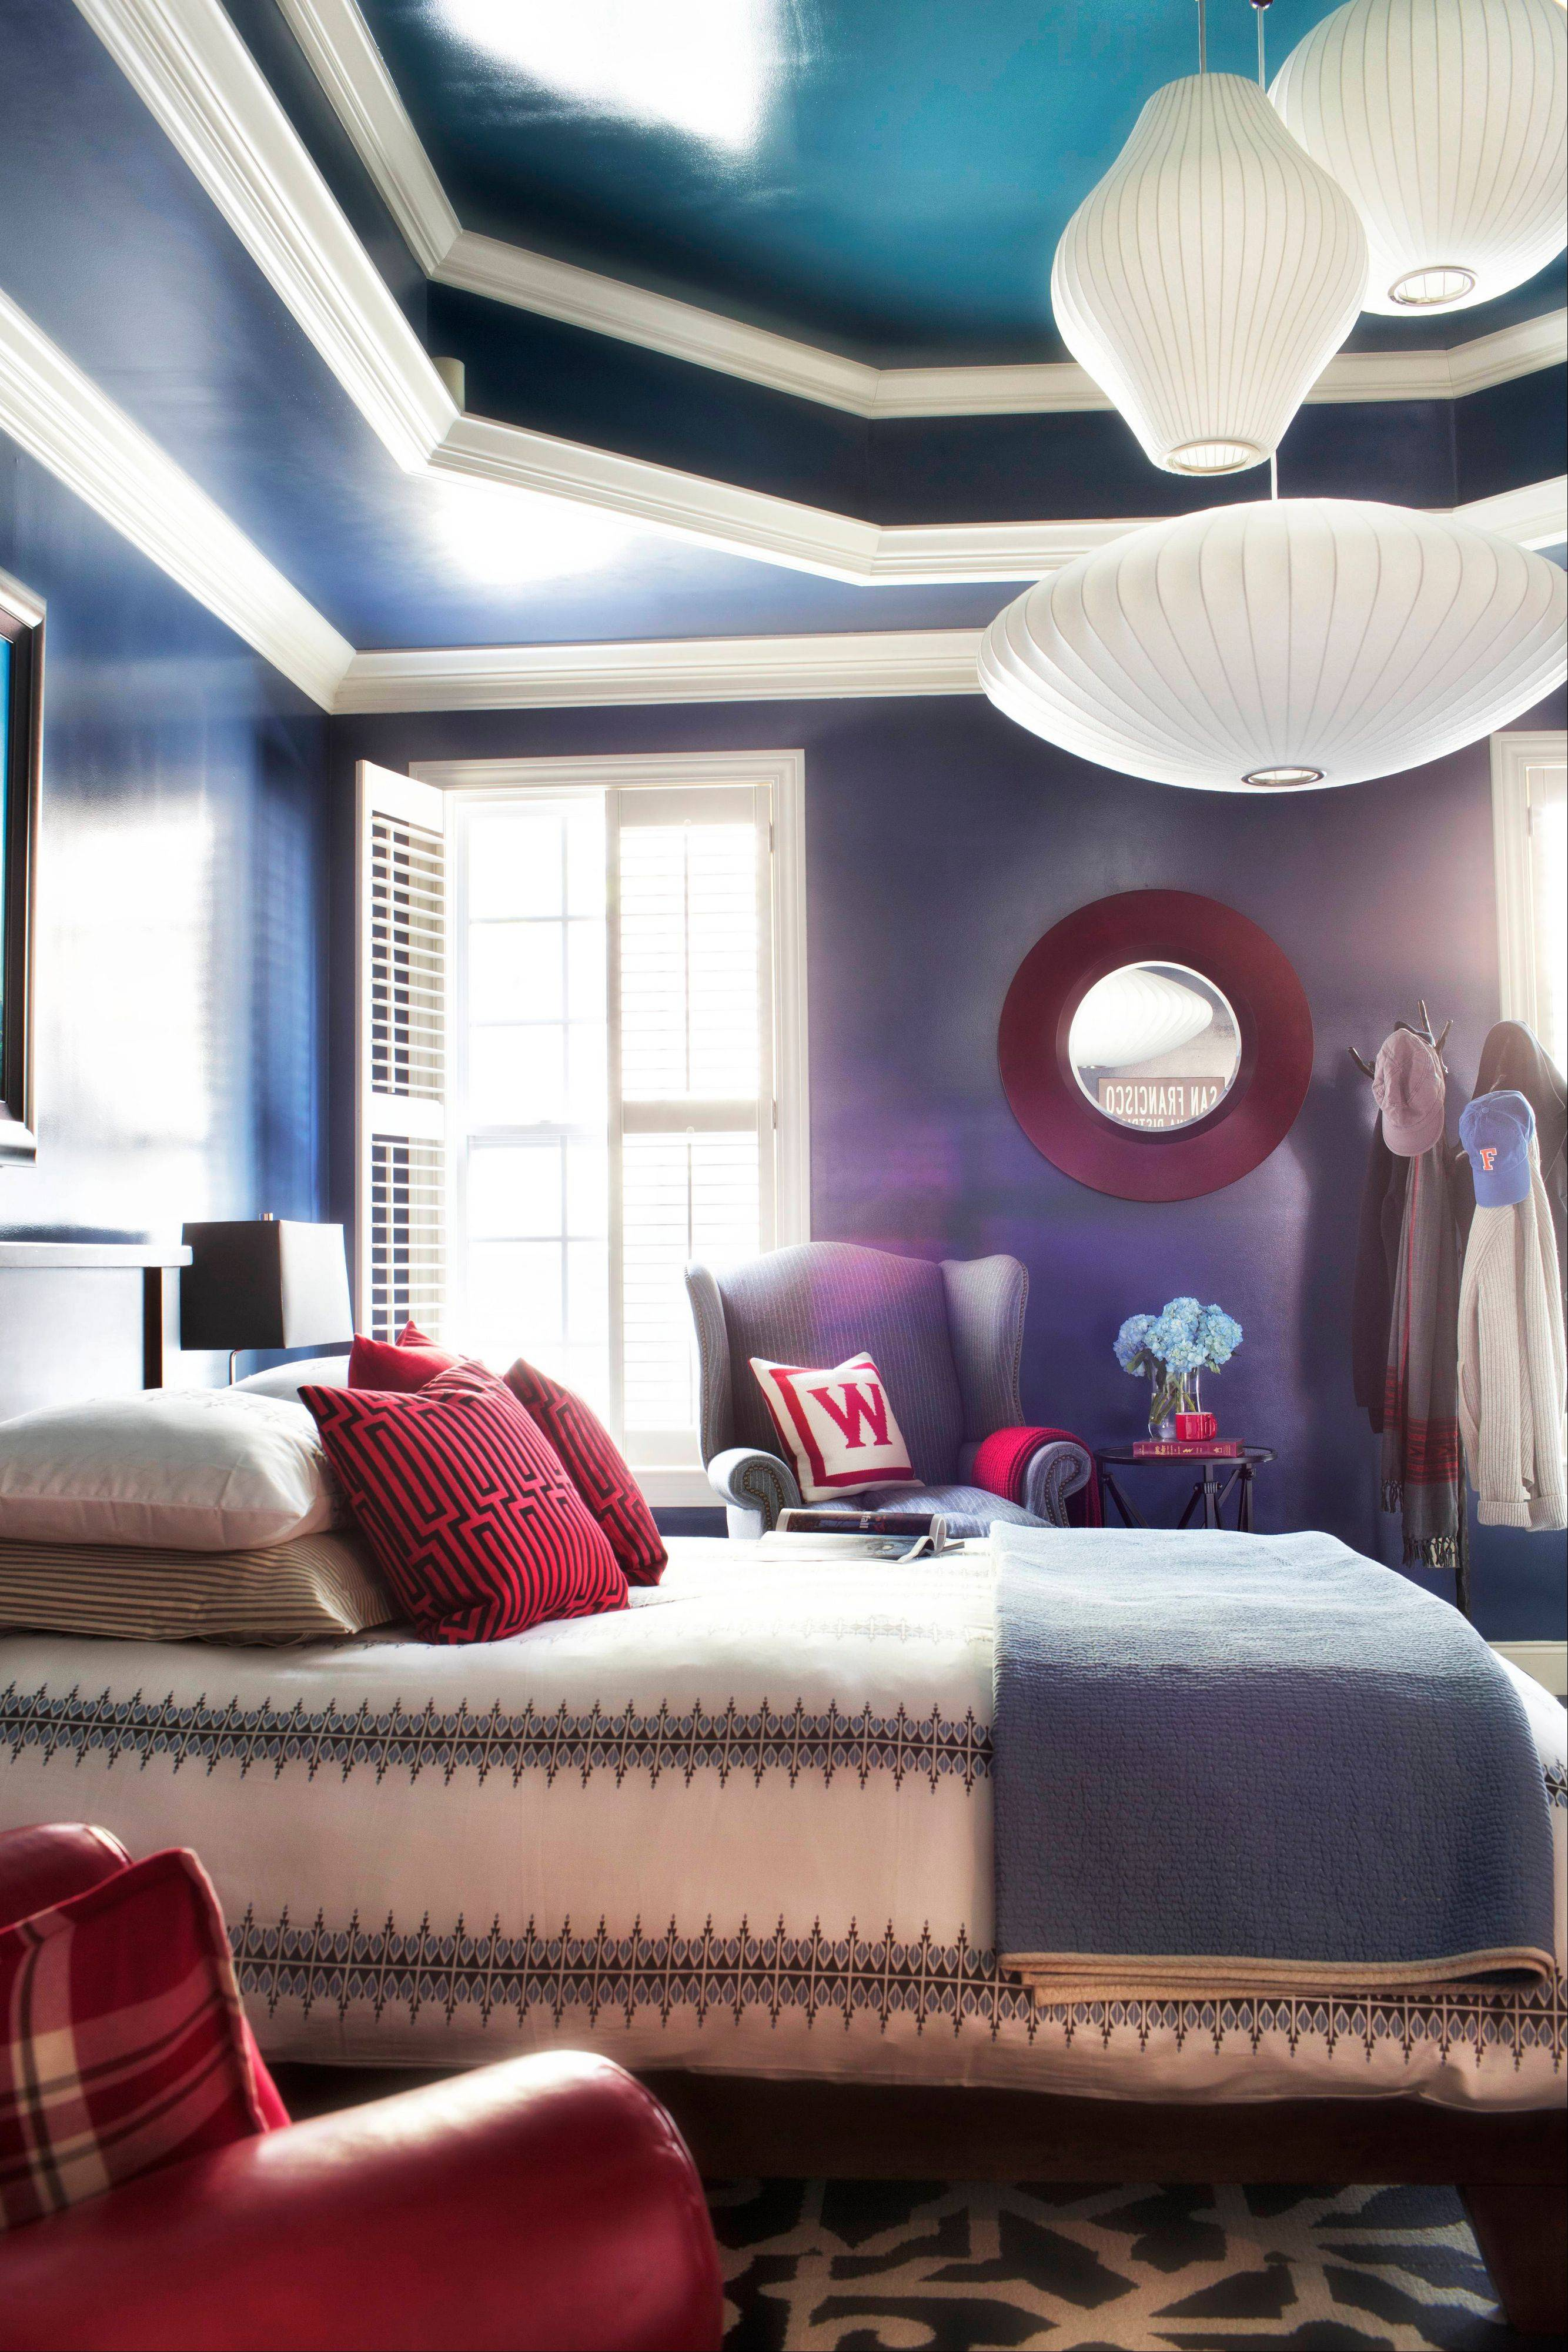 Designer Brian Patrick Flynn groups several vintage George Nelson bubble pendants together to hang above this bed, creating a warm pool of light in the bedroom.